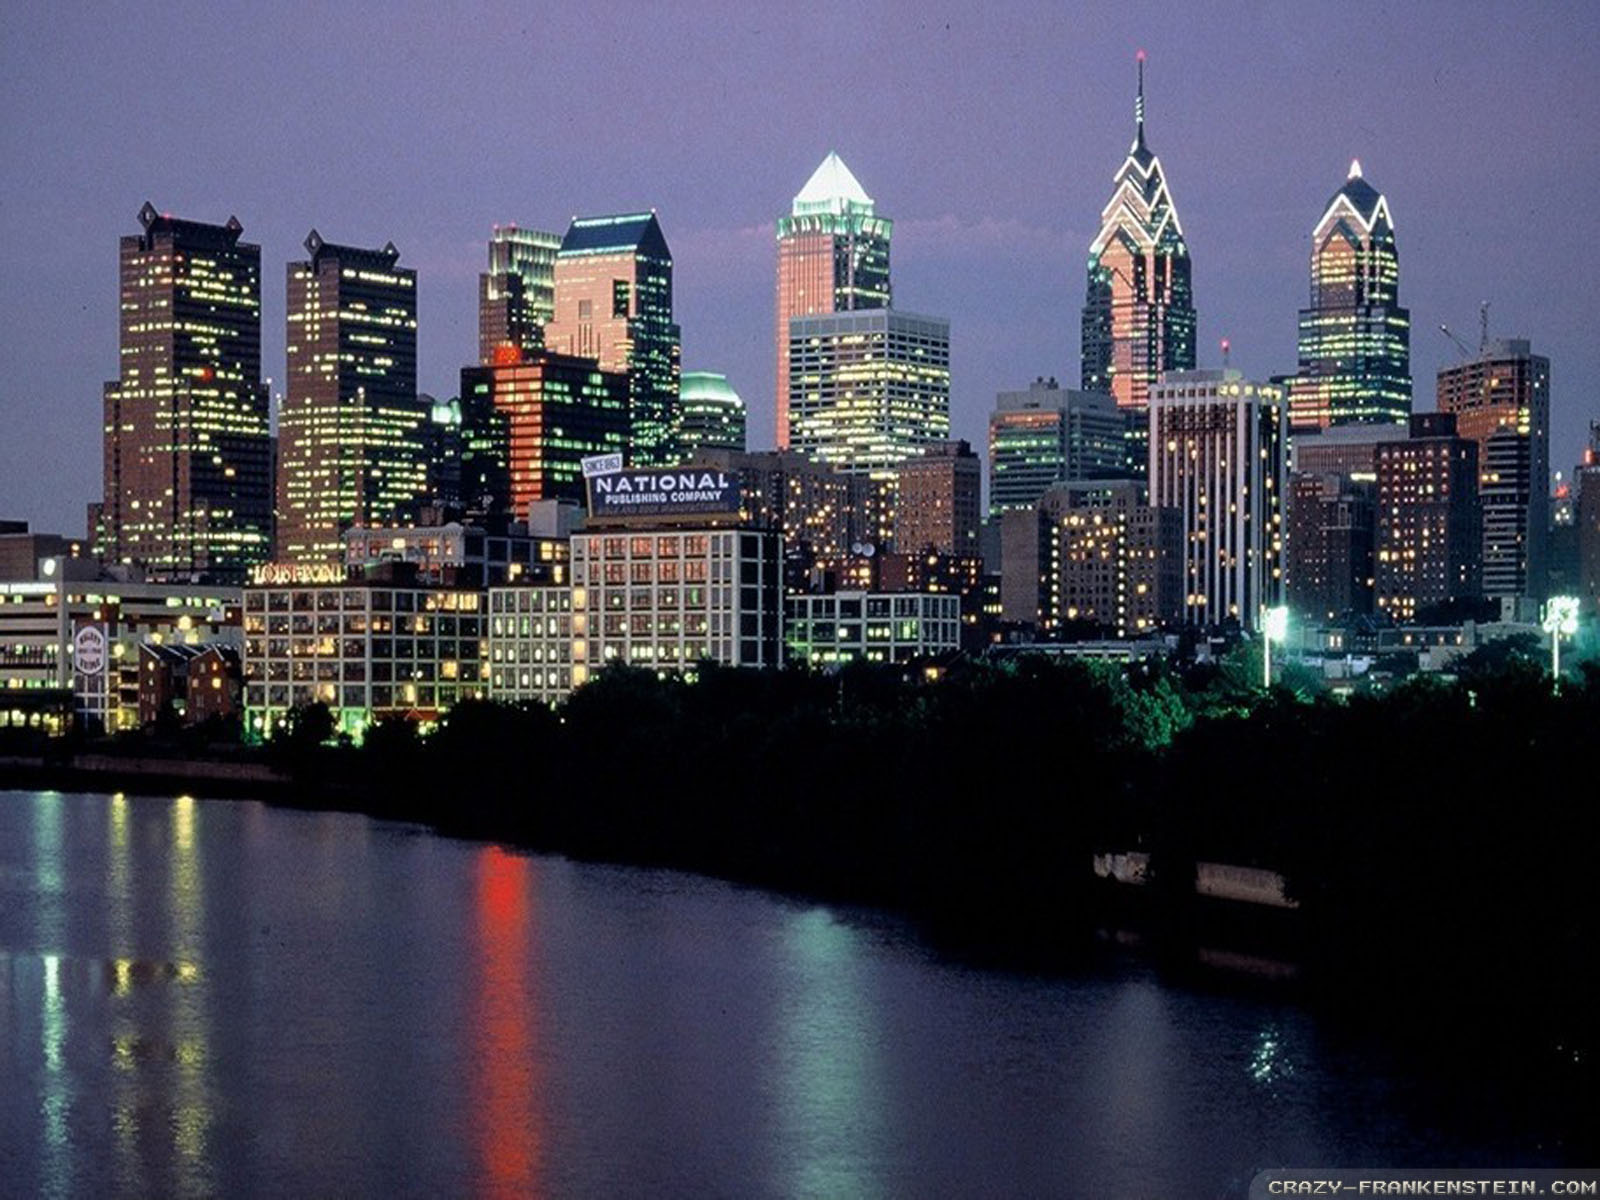 Wallpaper: Philadelphia wallpapers 2. Resolution: 1024x768 | 1280x1024 | 1600x1200